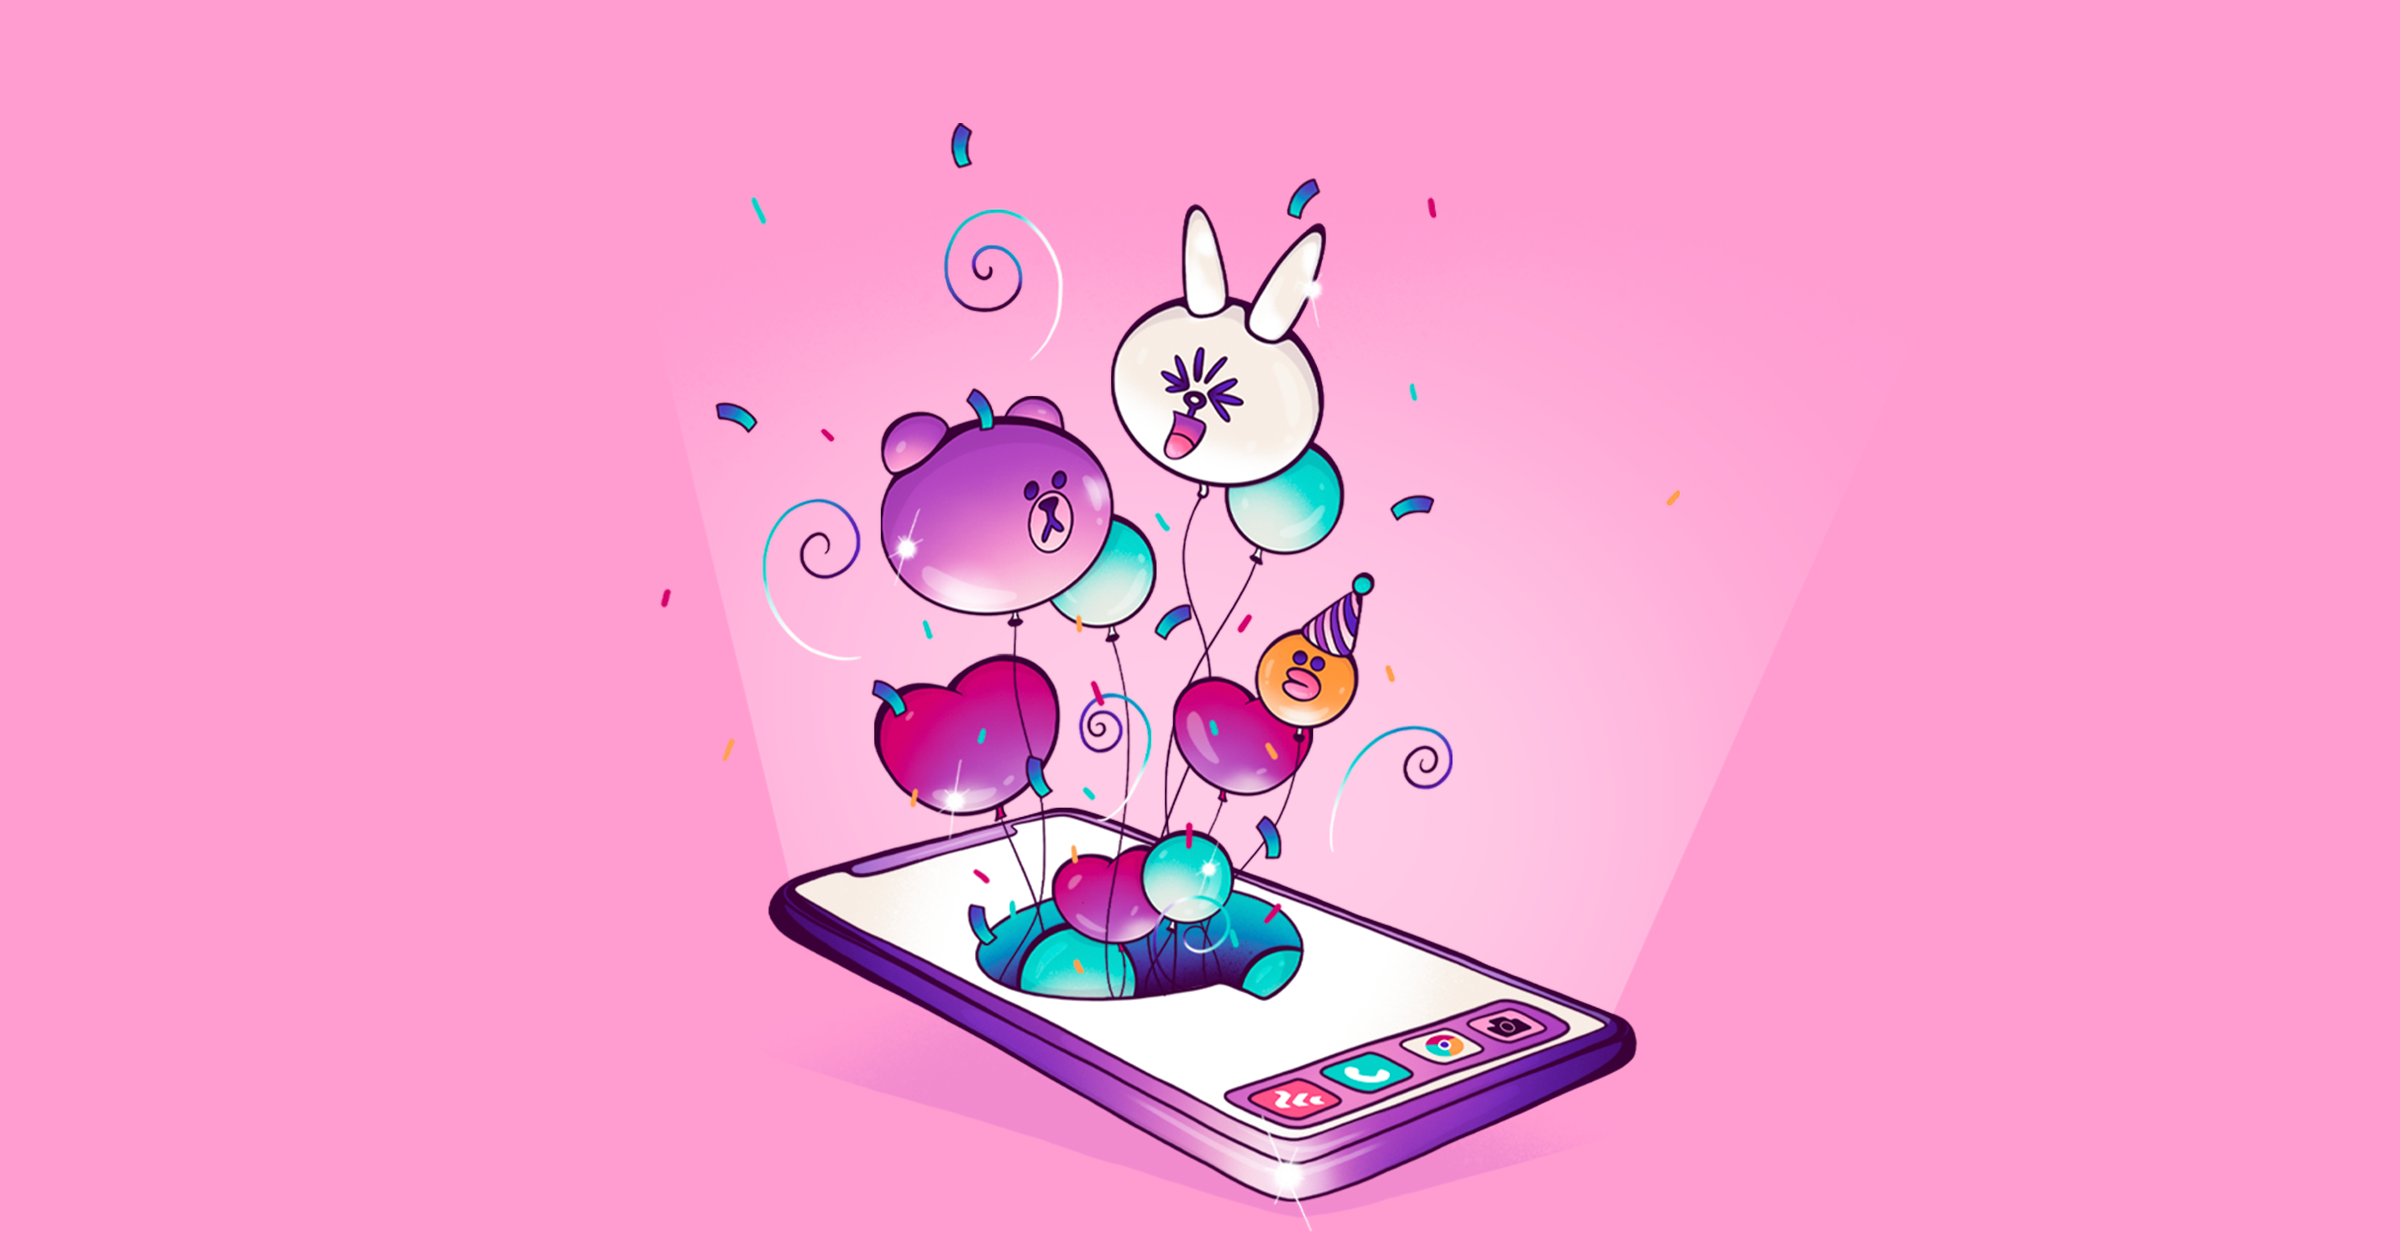 Line, the app that makes millions selling stickers